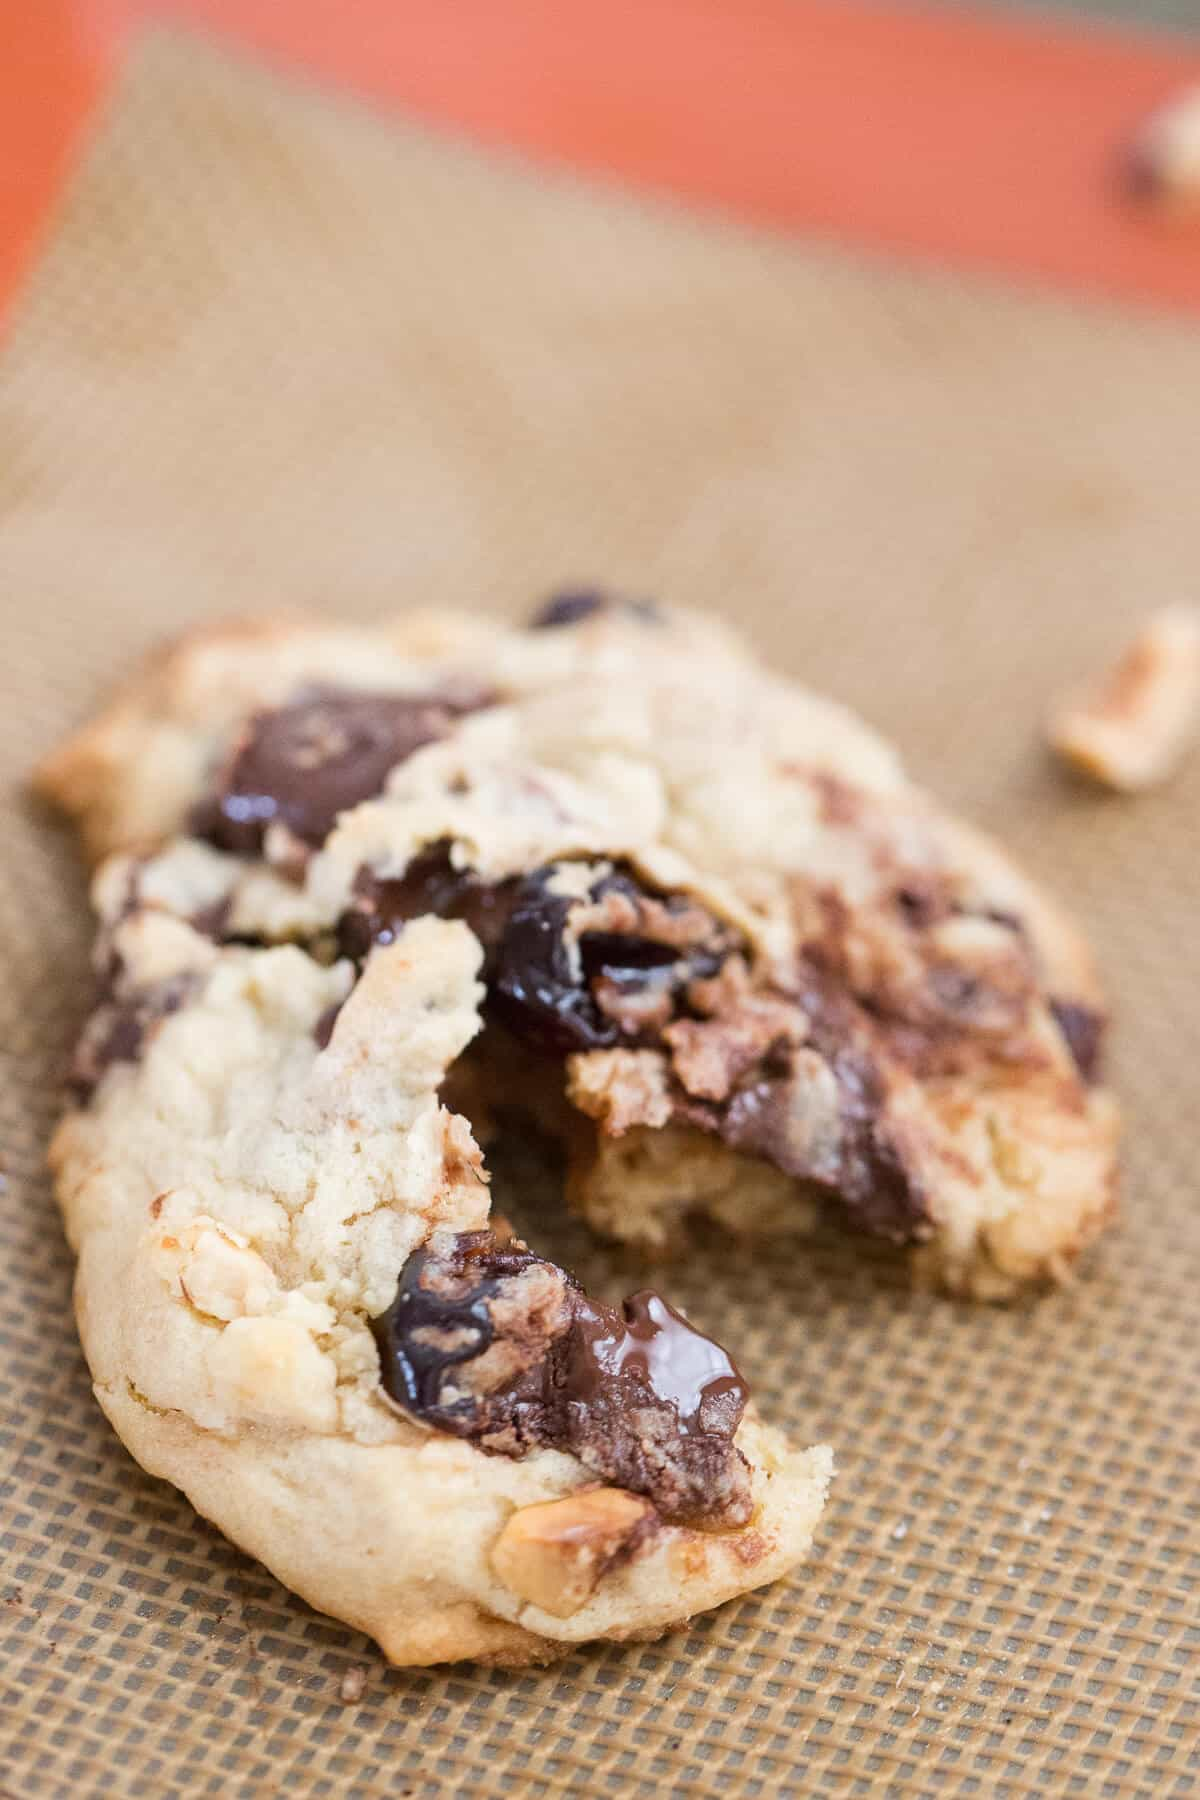 These cherry chip cookies are loaded! Each bite reveals chocolate chunks, hazelnuts and booze-soaked cherries!